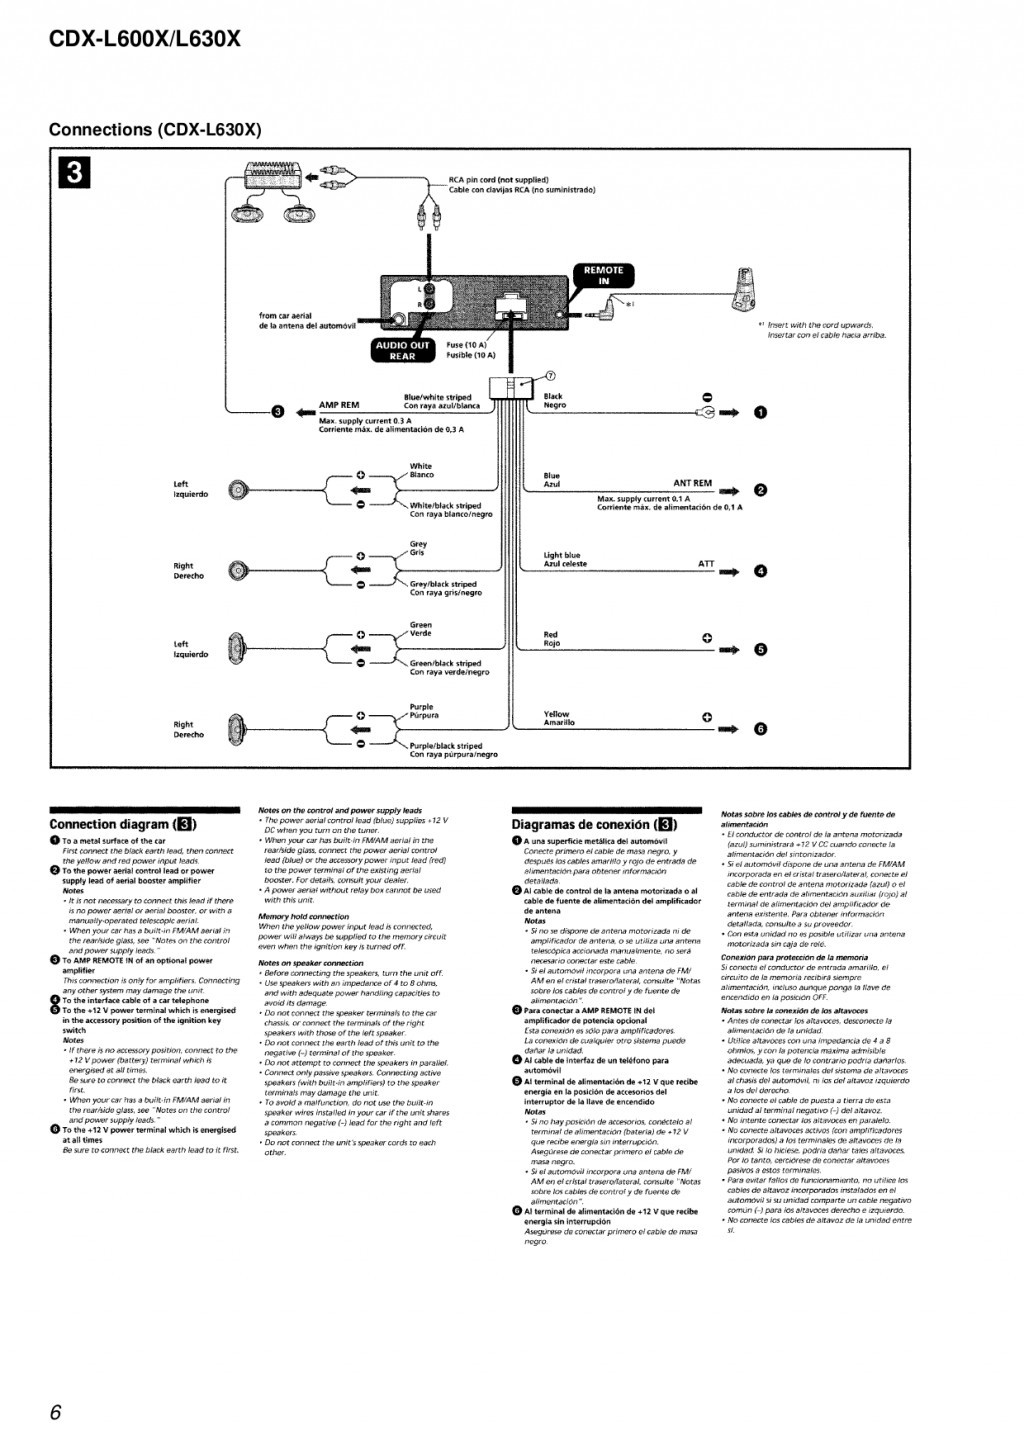 Cdx Ca705m Wiring Diagram Schematic Basic Electrical Diagrams Lights Series Residential Trailer